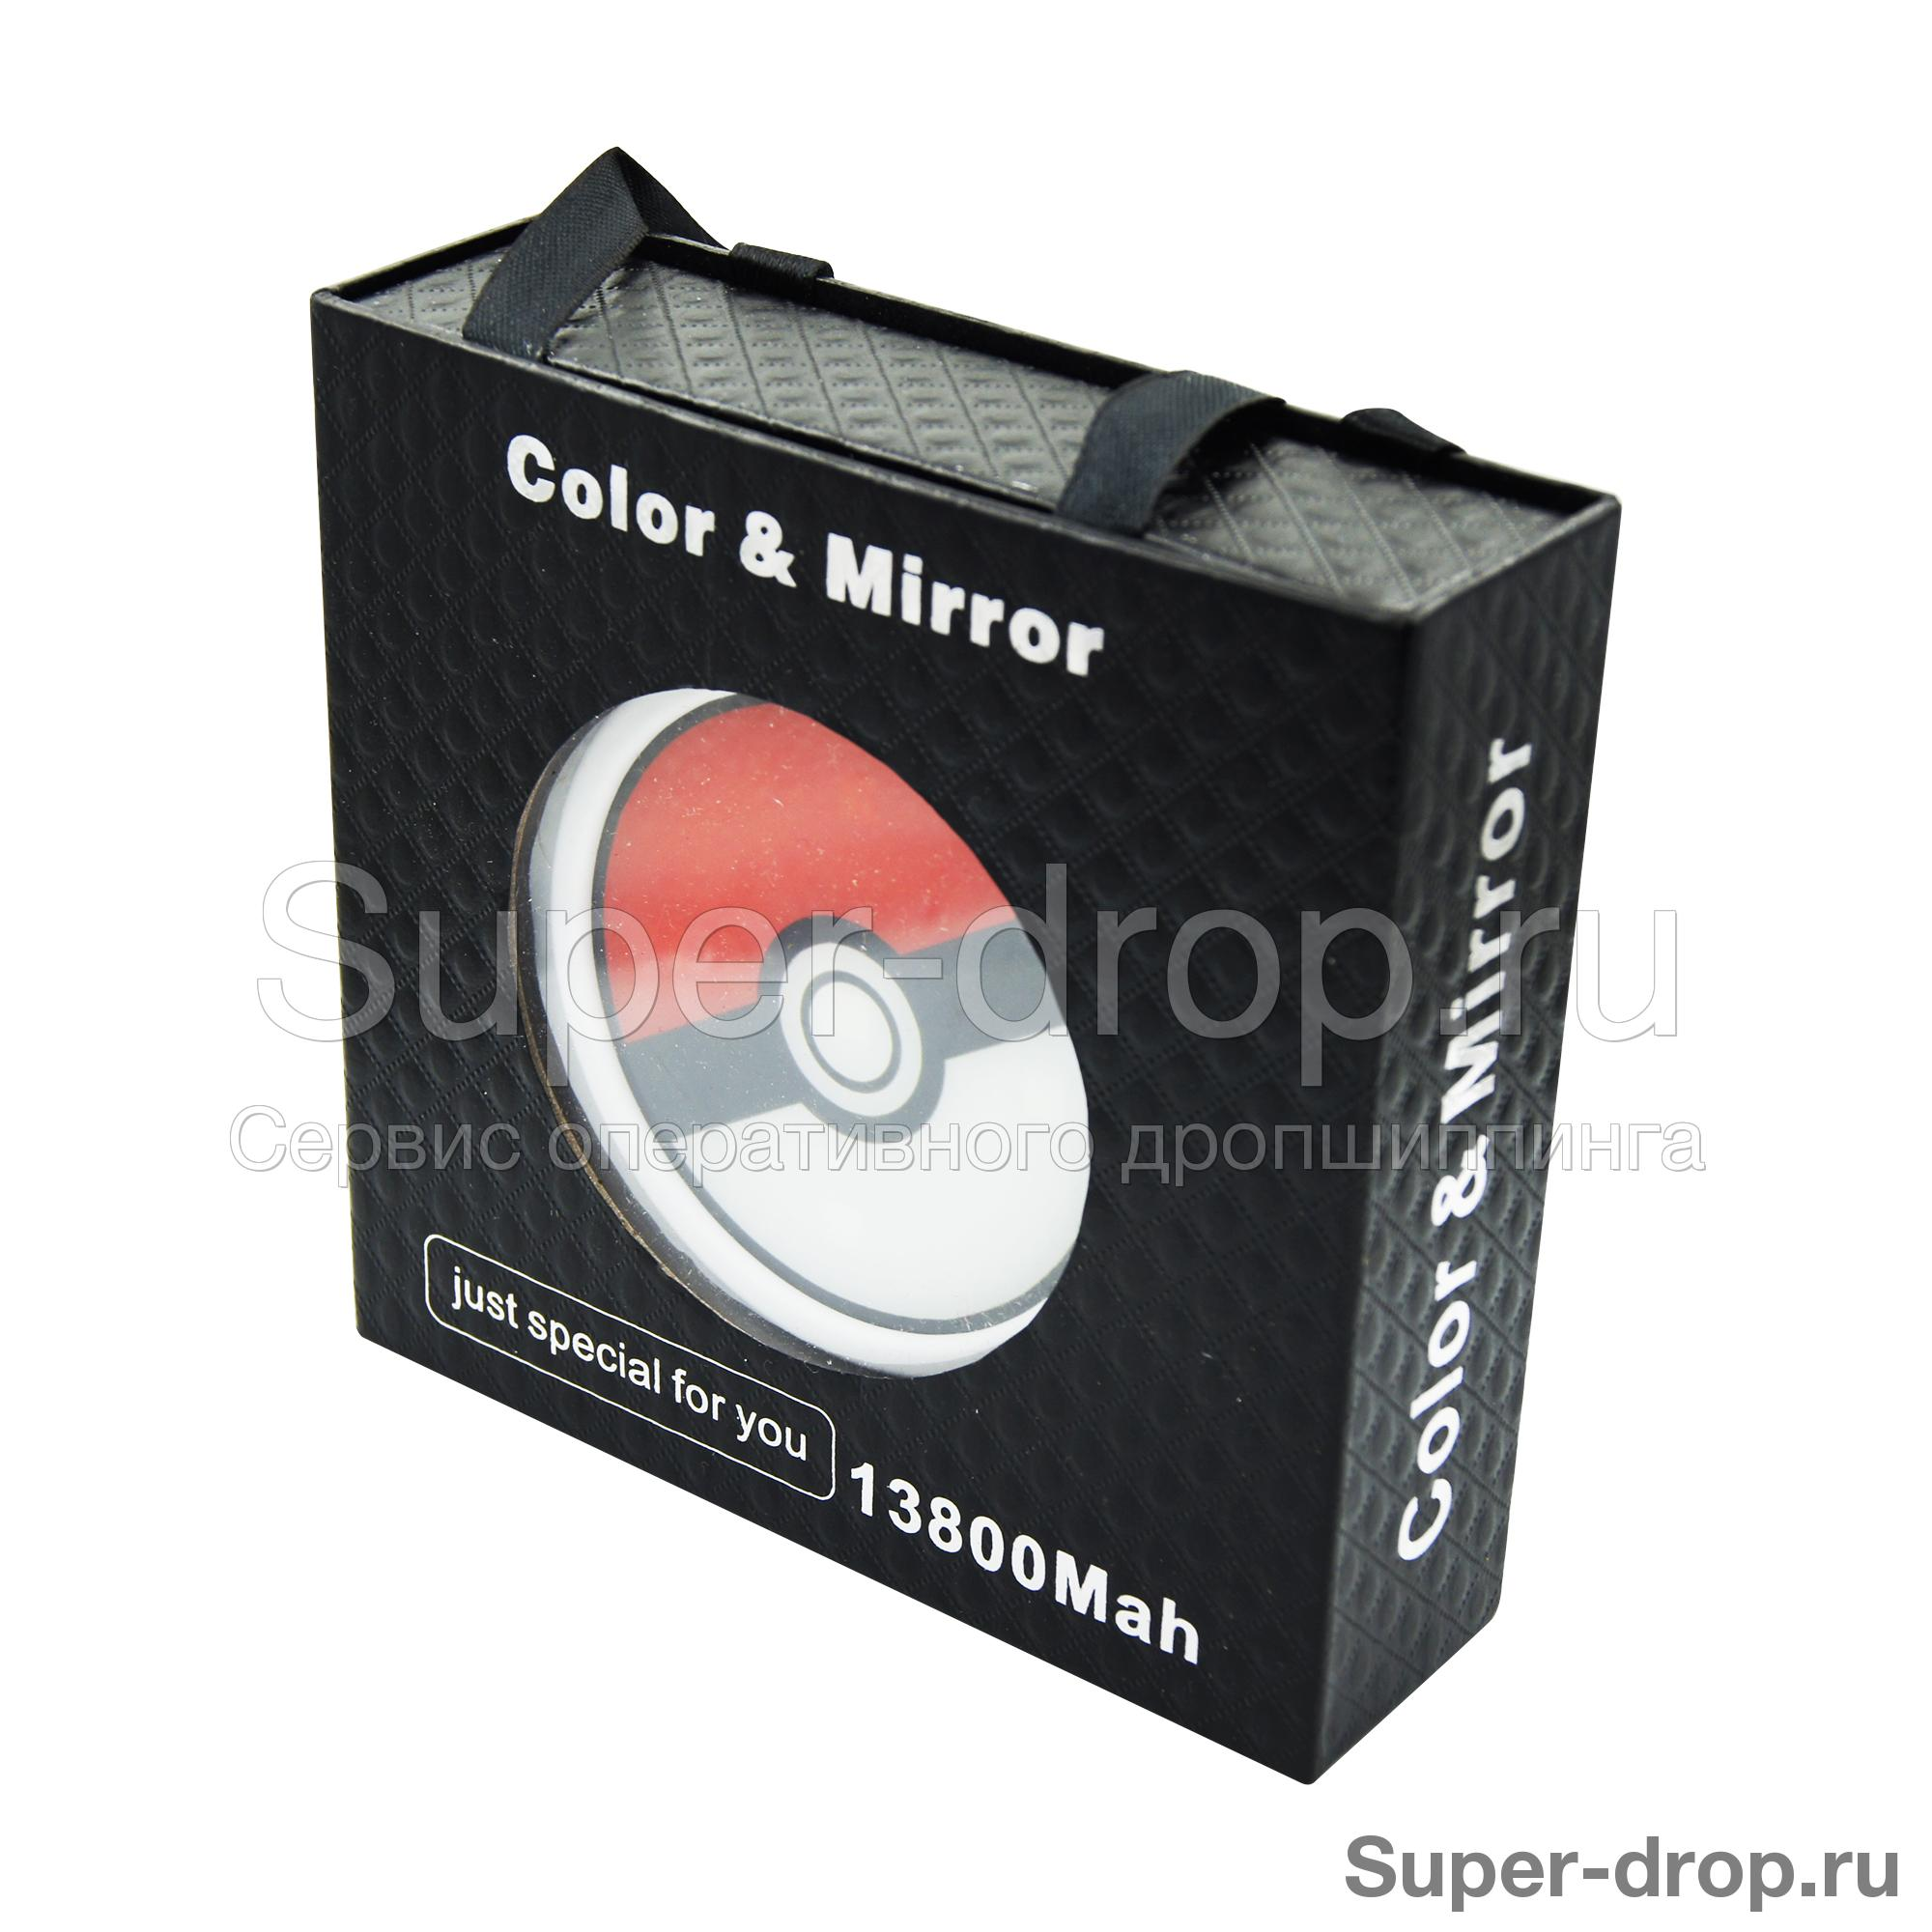 Power Bank Pokeball с зеркалом 13800 mAh